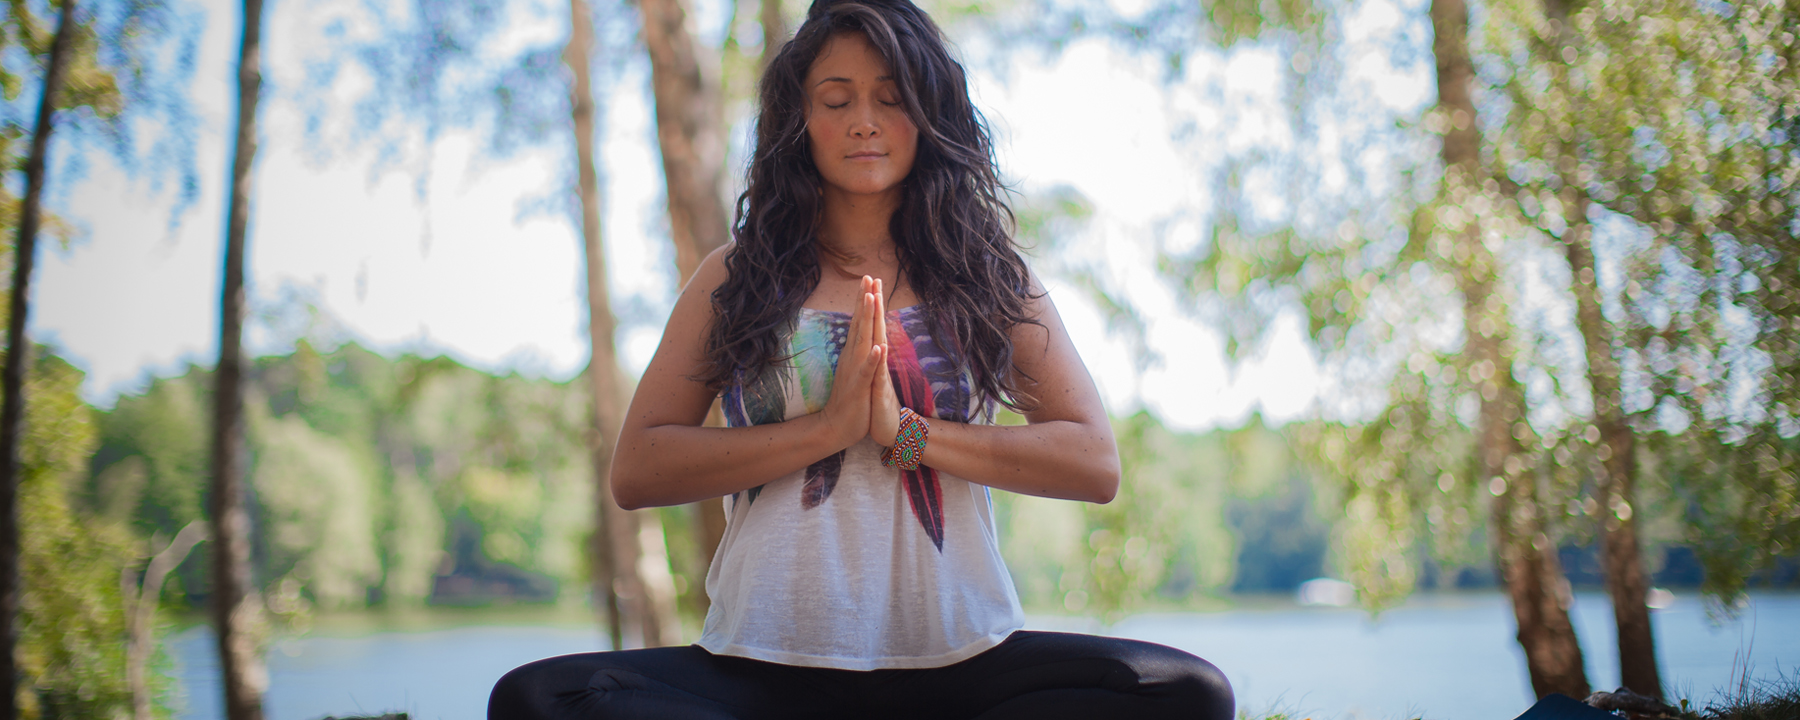 Did You Know Yoga Serves the Dual Purpose, likelovequotes.com ,Like Love Quotes